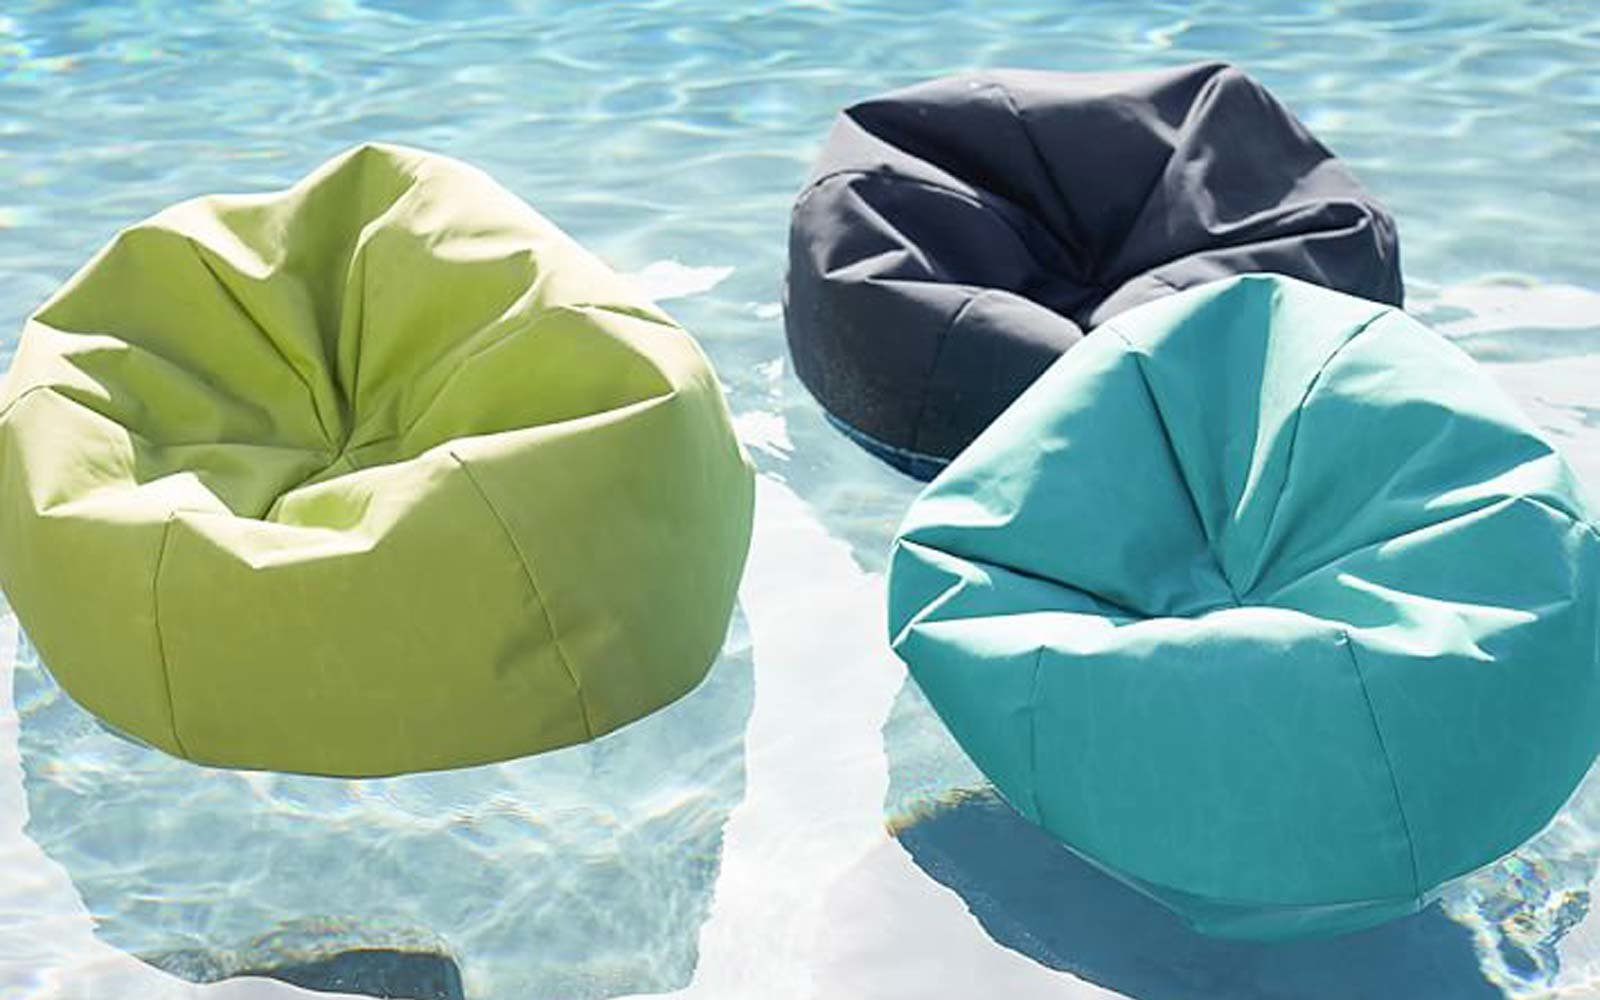 These Bean Bag Pool Floats Are the Ultimate Lazy Summer Accessory